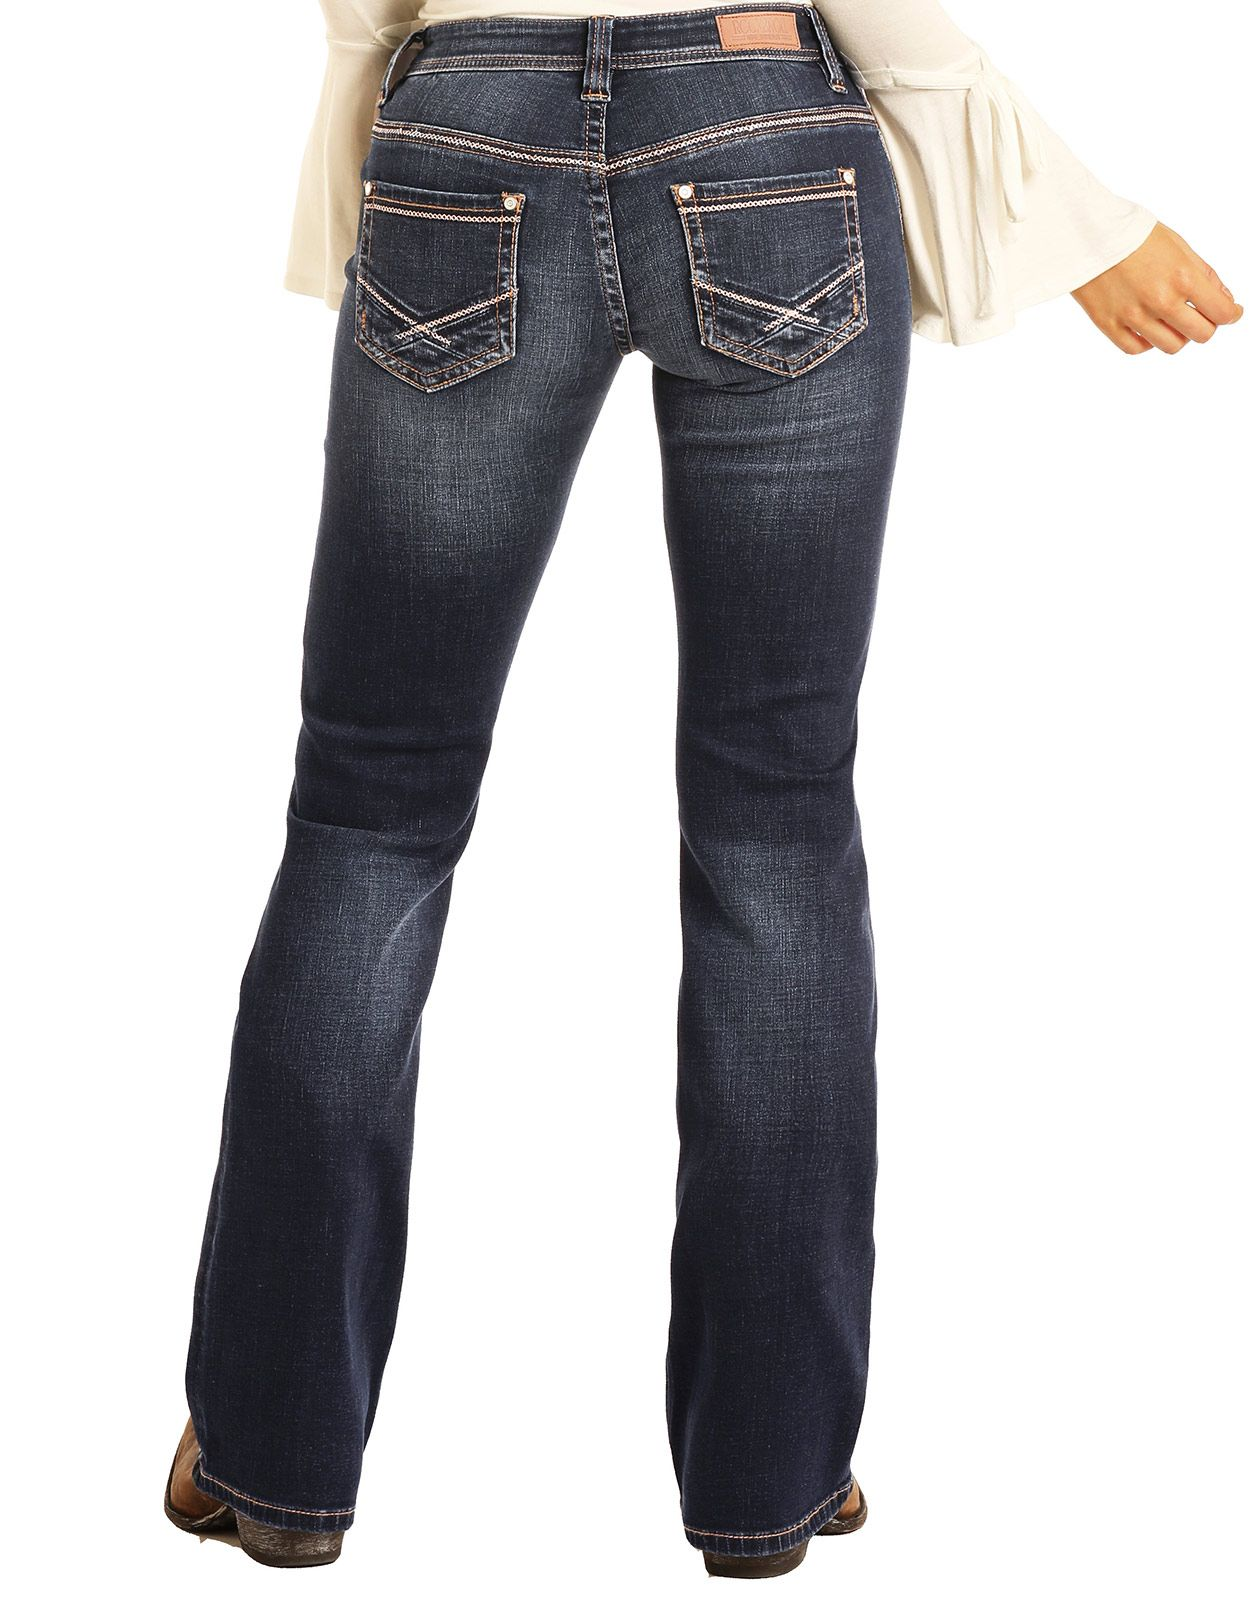 Rock & Roll Cowgirl Women's Extra Stretch Riding Mid Rise Slim Fit Bootcut Jeans- Dark Wash (Closeout)